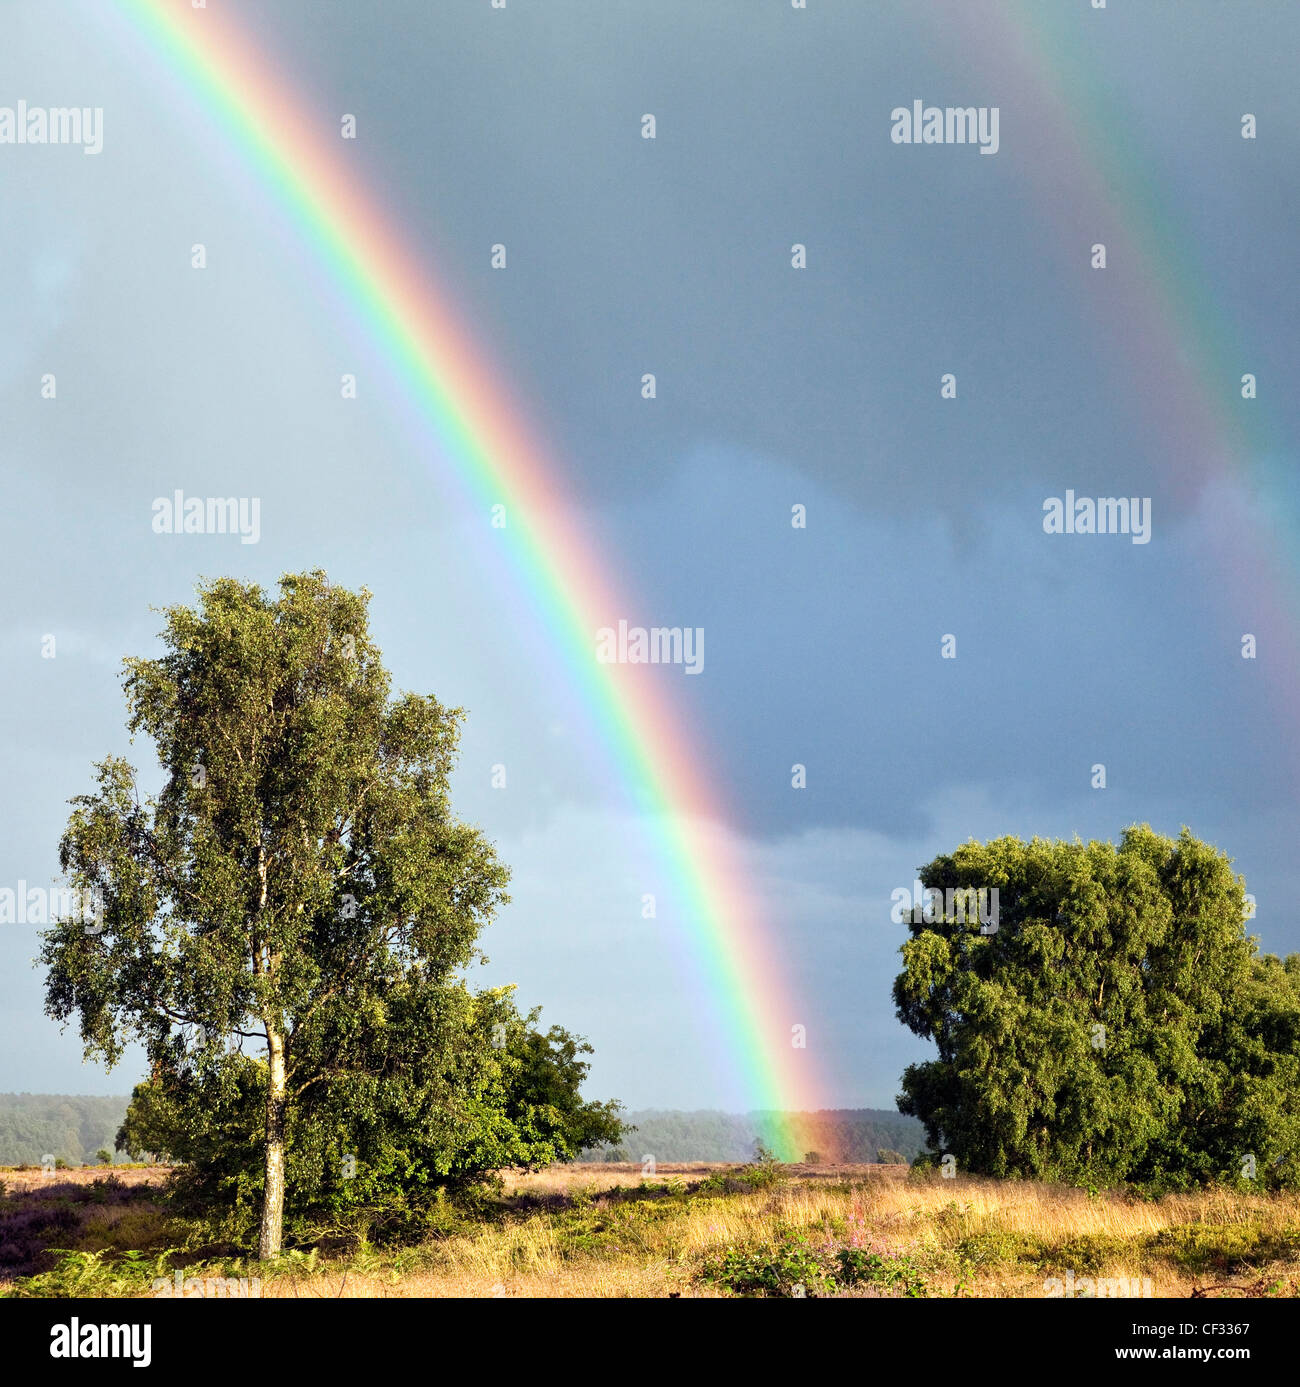 Rainbows across Grassland of Brocton Field on Cannock Chase Country Park AONB (area of outstanding natural beauty) - Stock Image